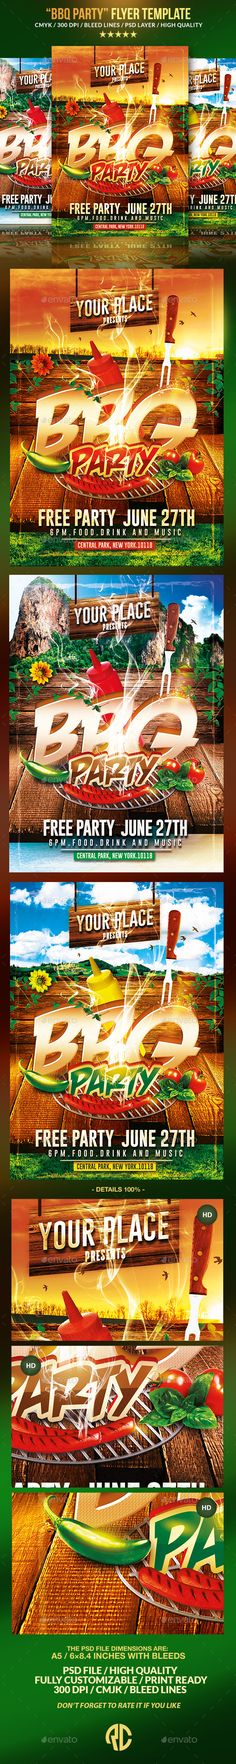 BBQ Party | Psd Flyer Template  New!! BBQ Seasons Party / Psd Flyer Templates A Clean, Very easy to Edit and Creative Design perfect to promote your Event !